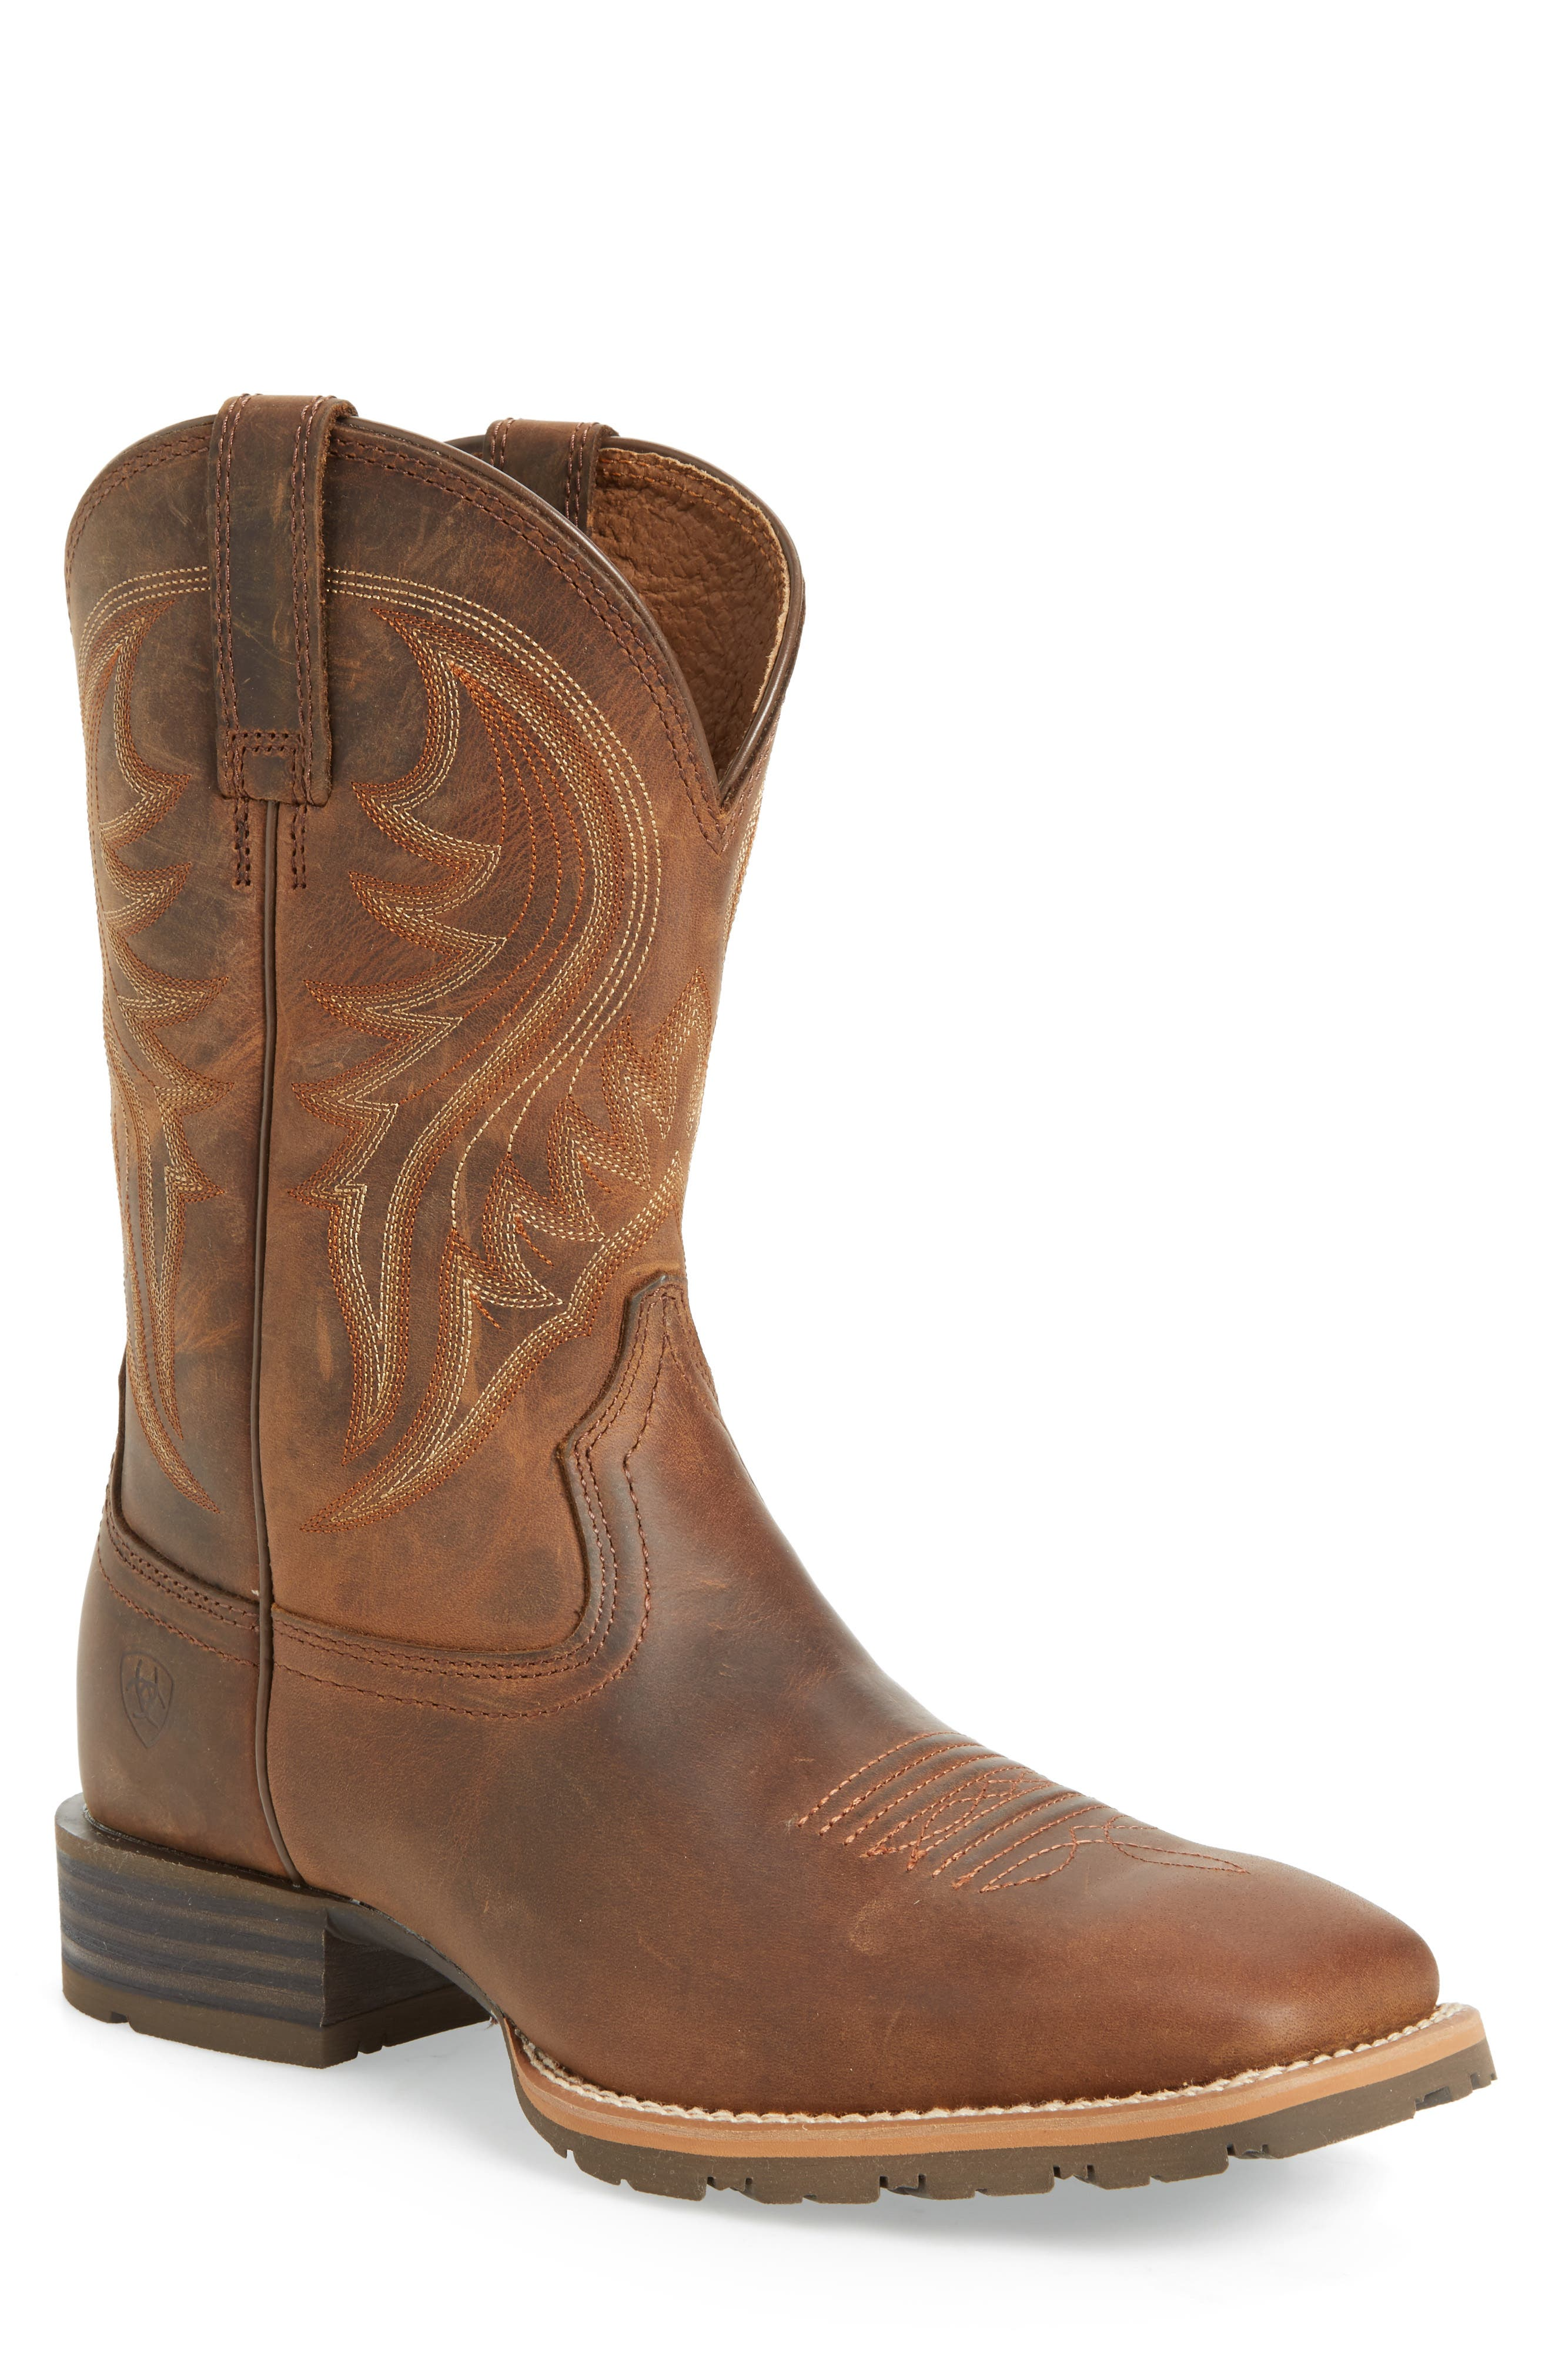 Hybrid Rancher Cowboy Boot,                             Main thumbnail 1, color,                             Distressed Brown Leather